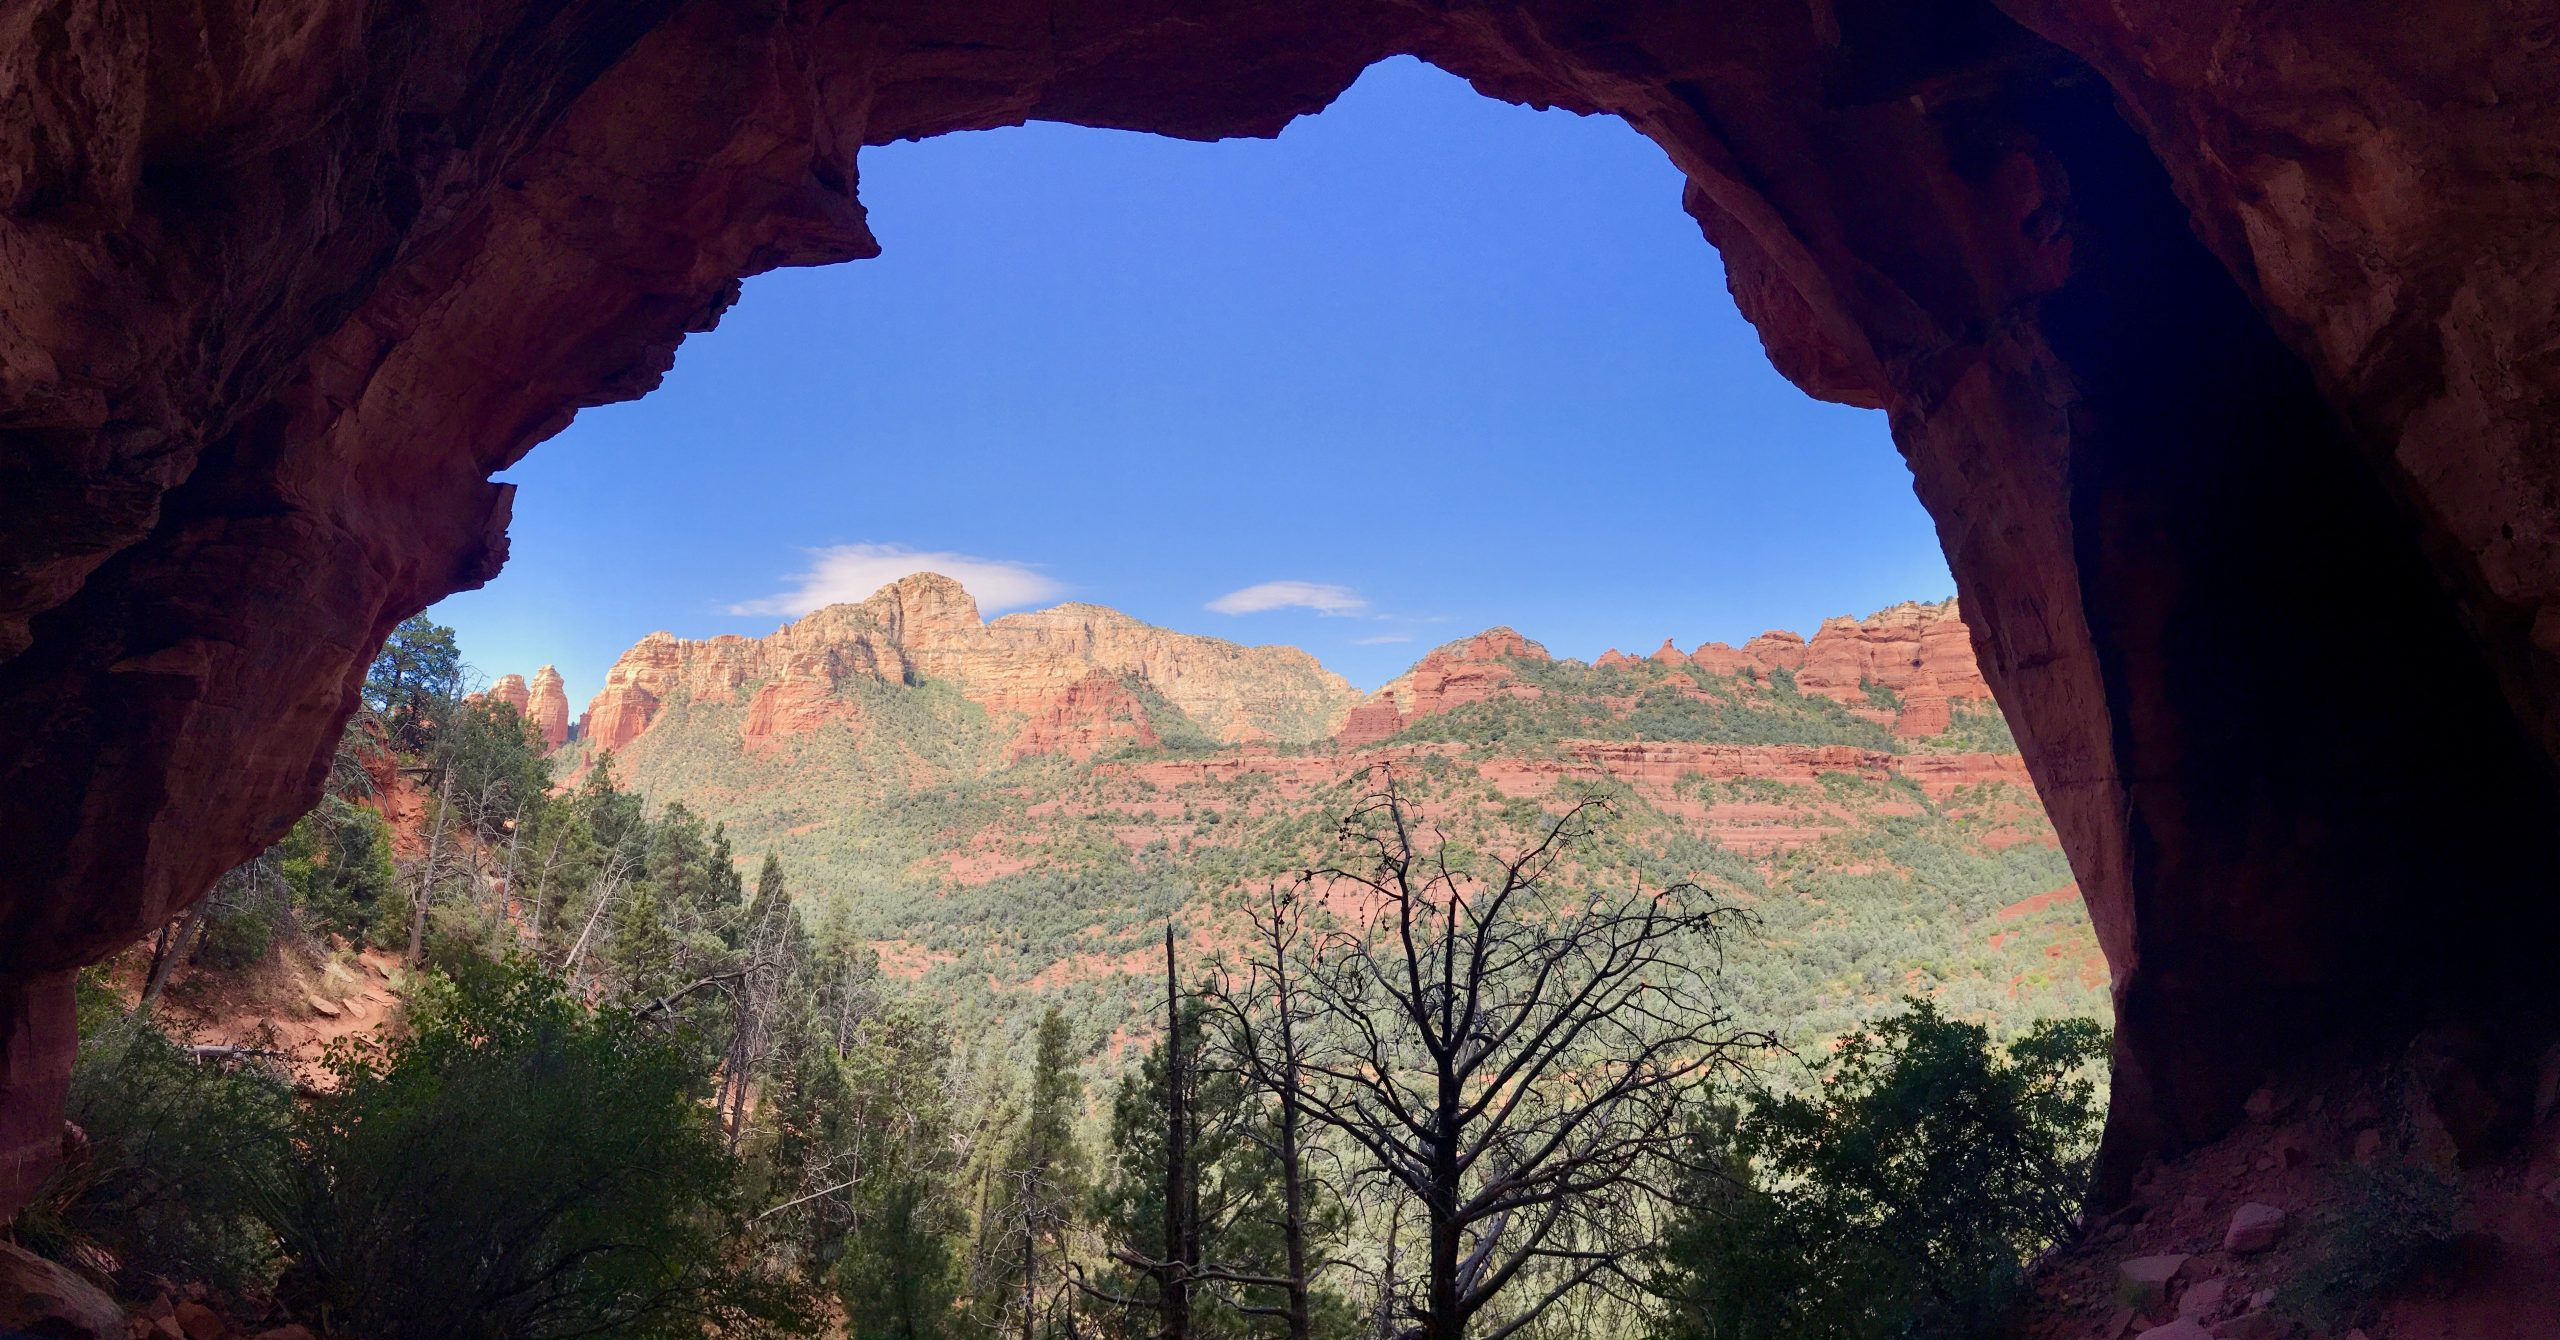 View from Arch at Soldier Pass Cave on Soldier Pass Trail Sedona AZ